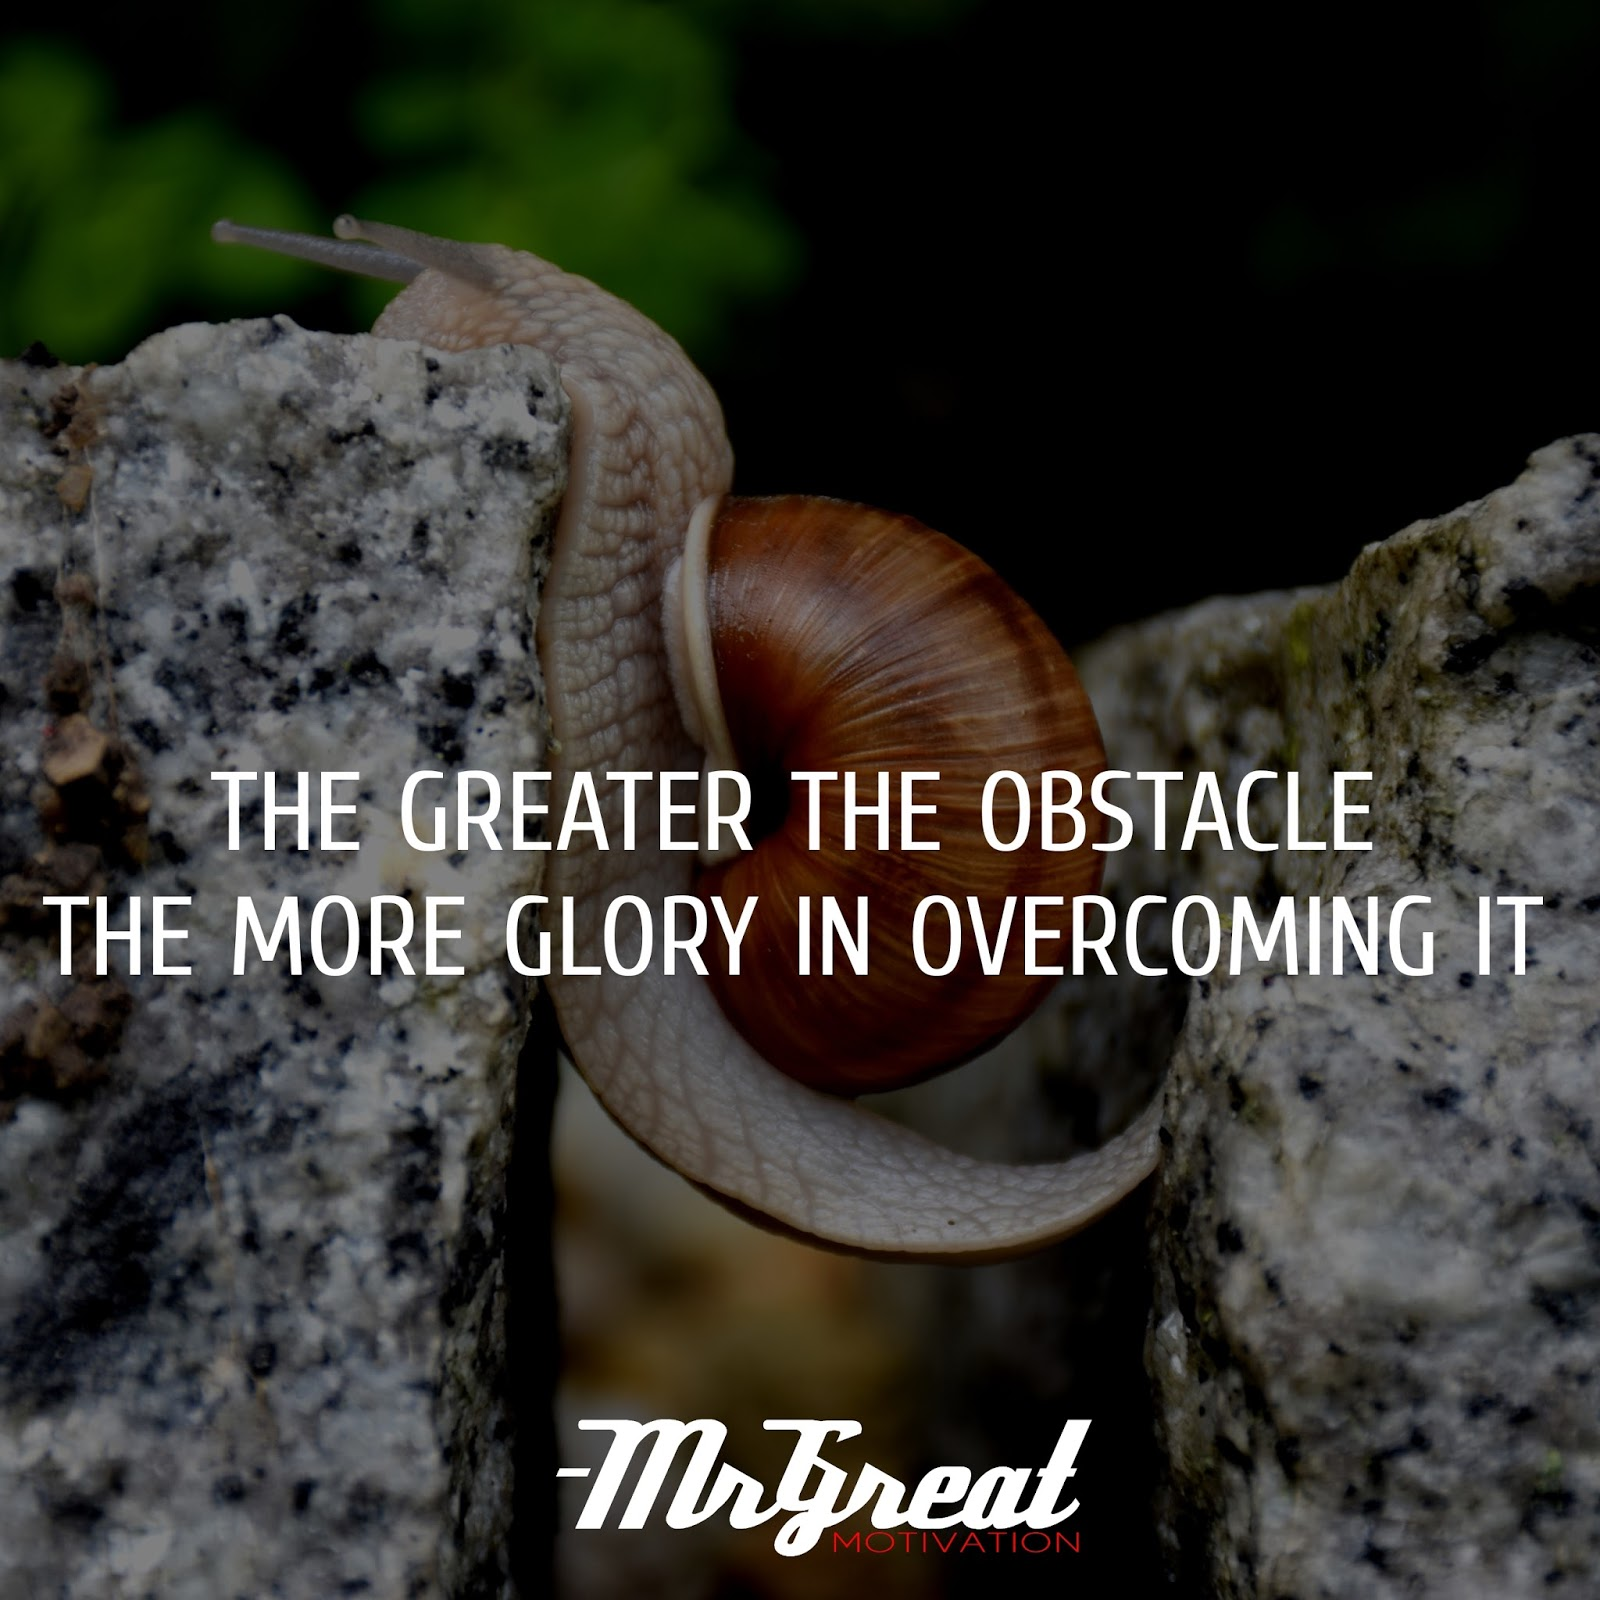 The greater the obstacle the more glory in overcoming it.